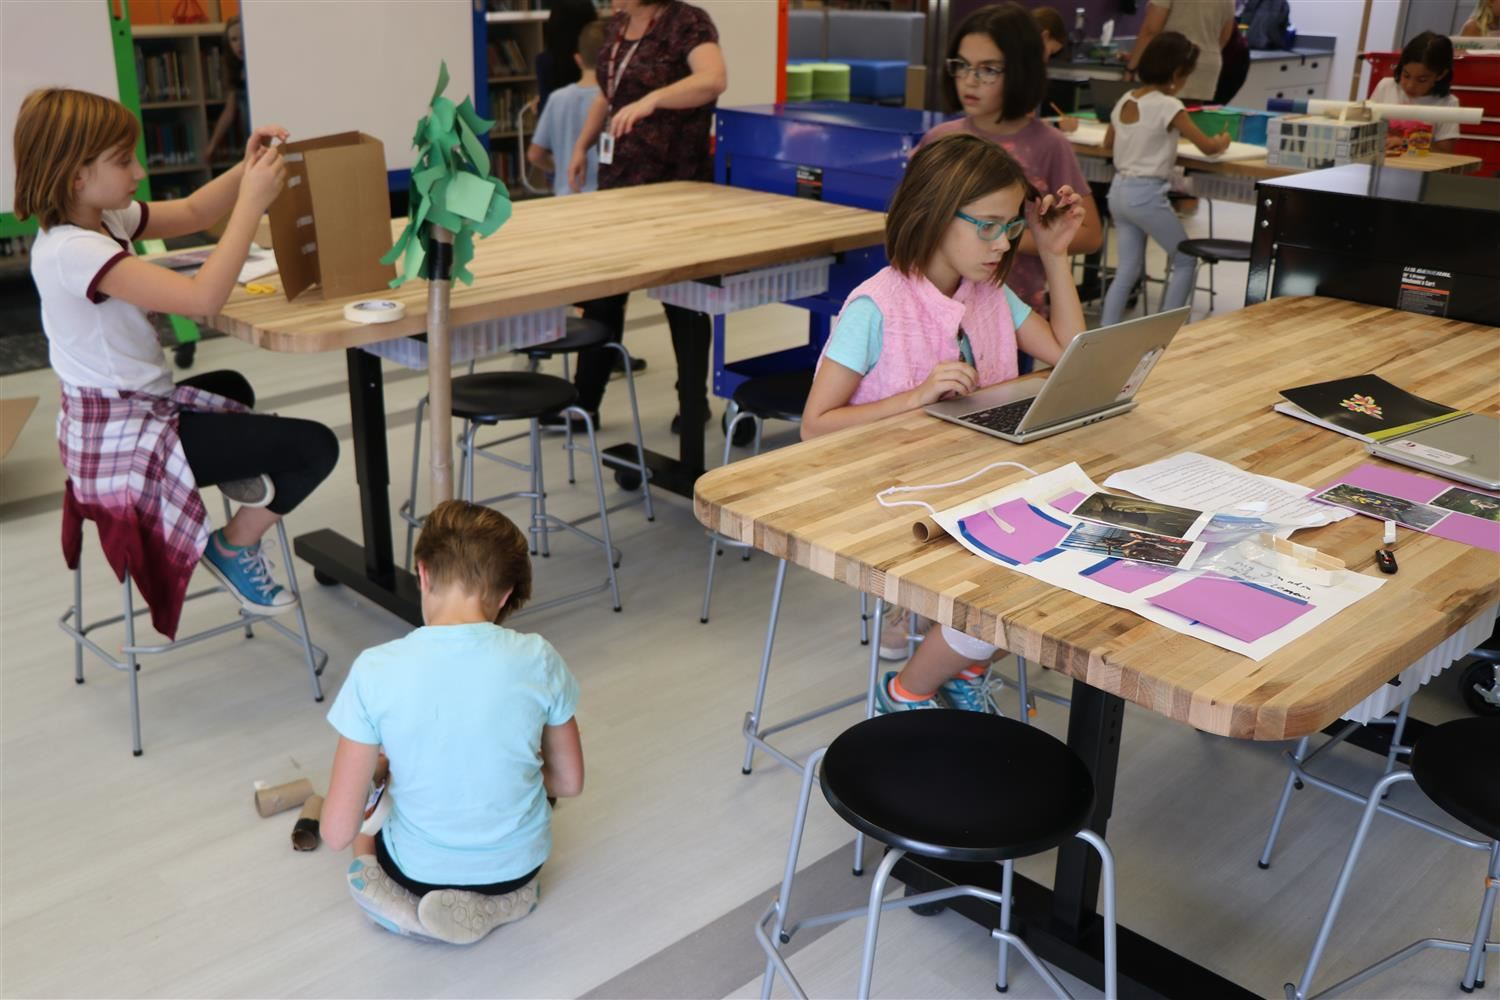 Students spread out and work on individual projects in school's new maker space.